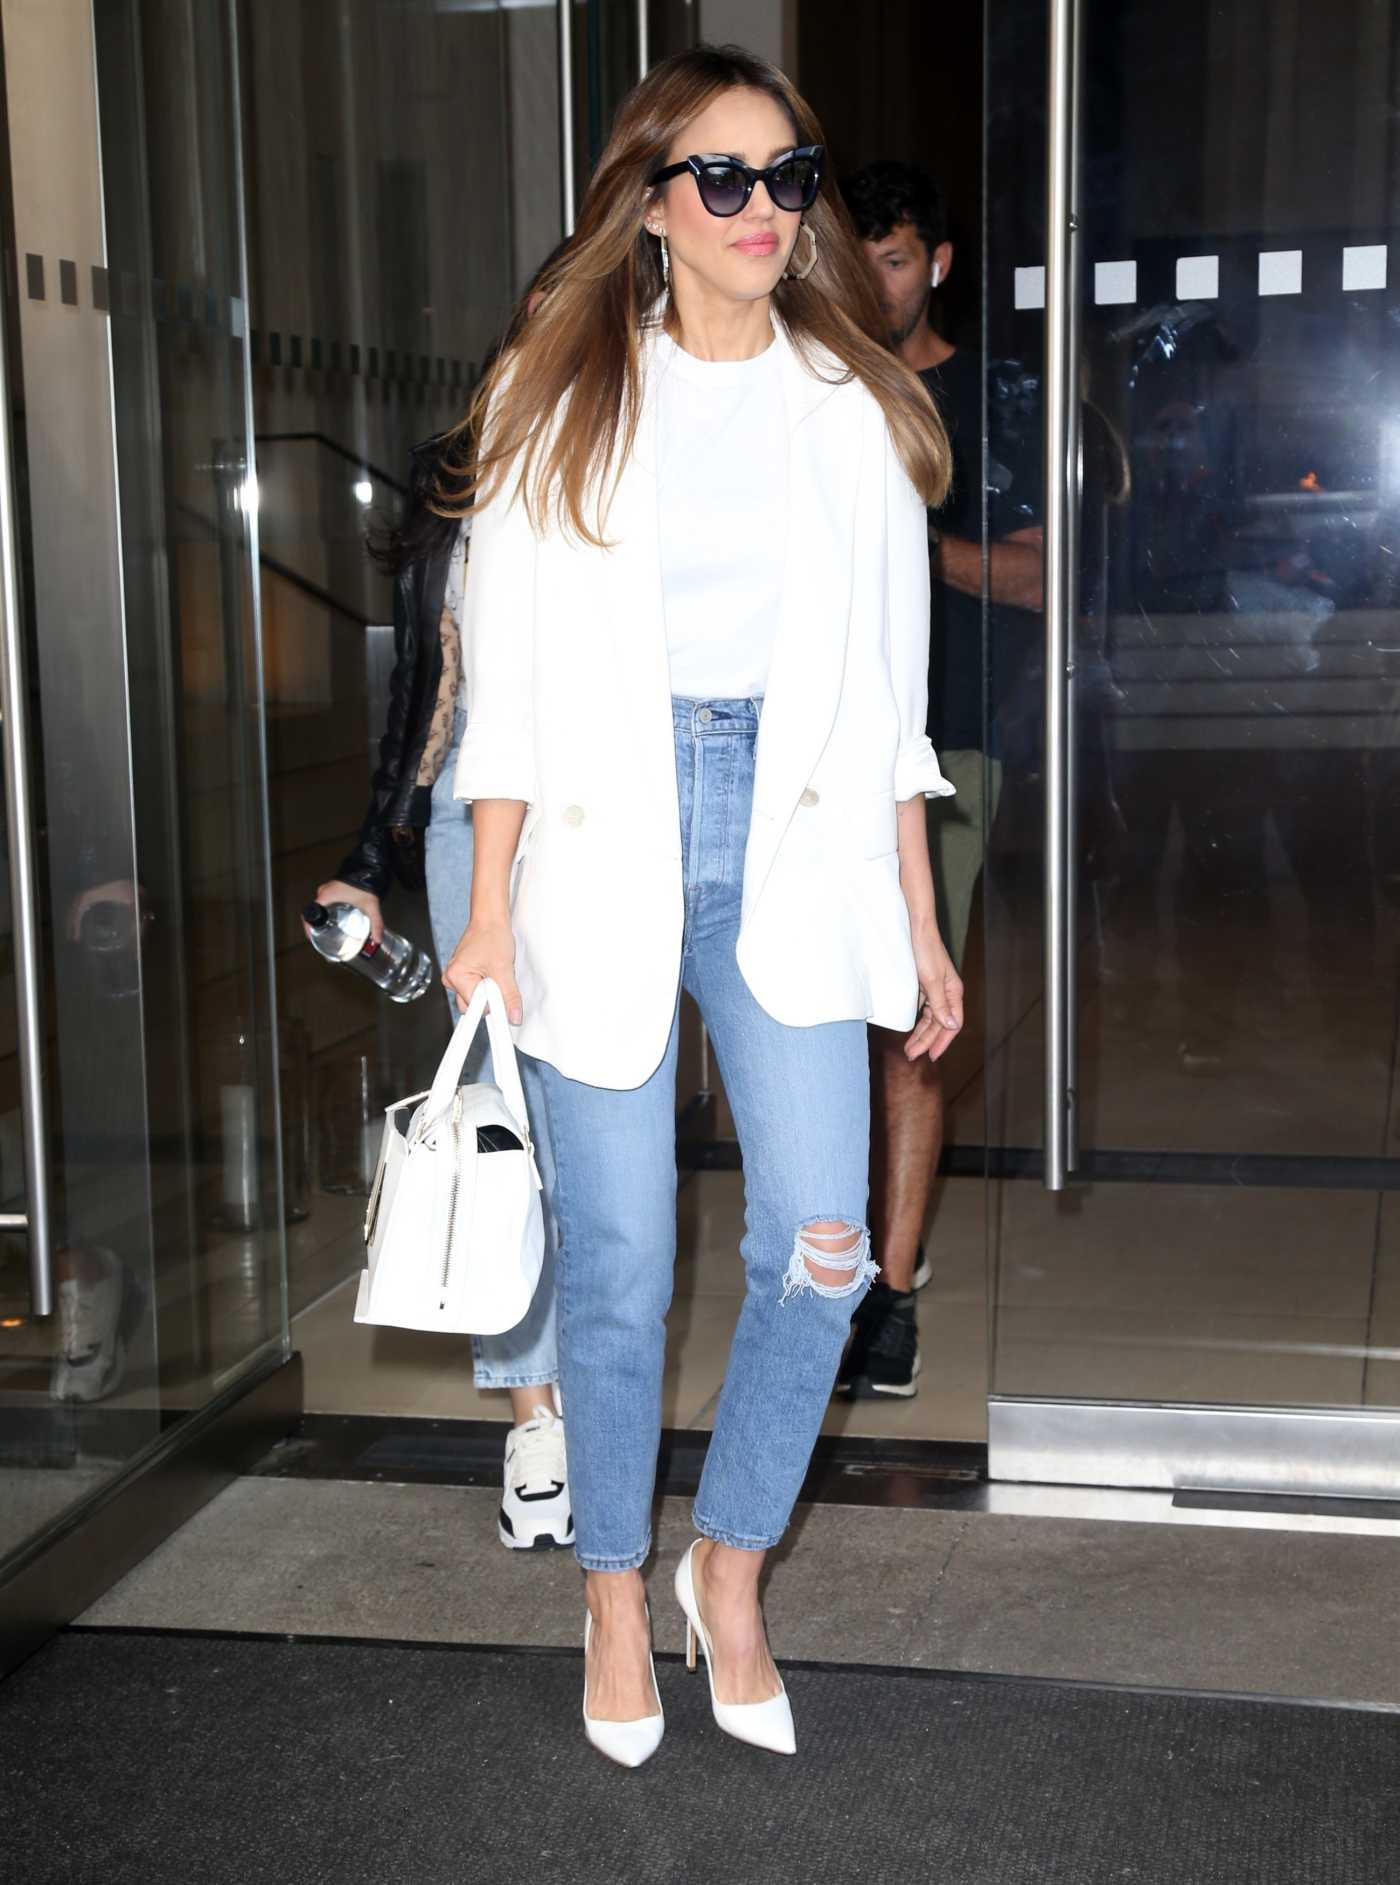 Jessica Alba in a White Blazer Leaves an office Building in New York City 05/16/2019